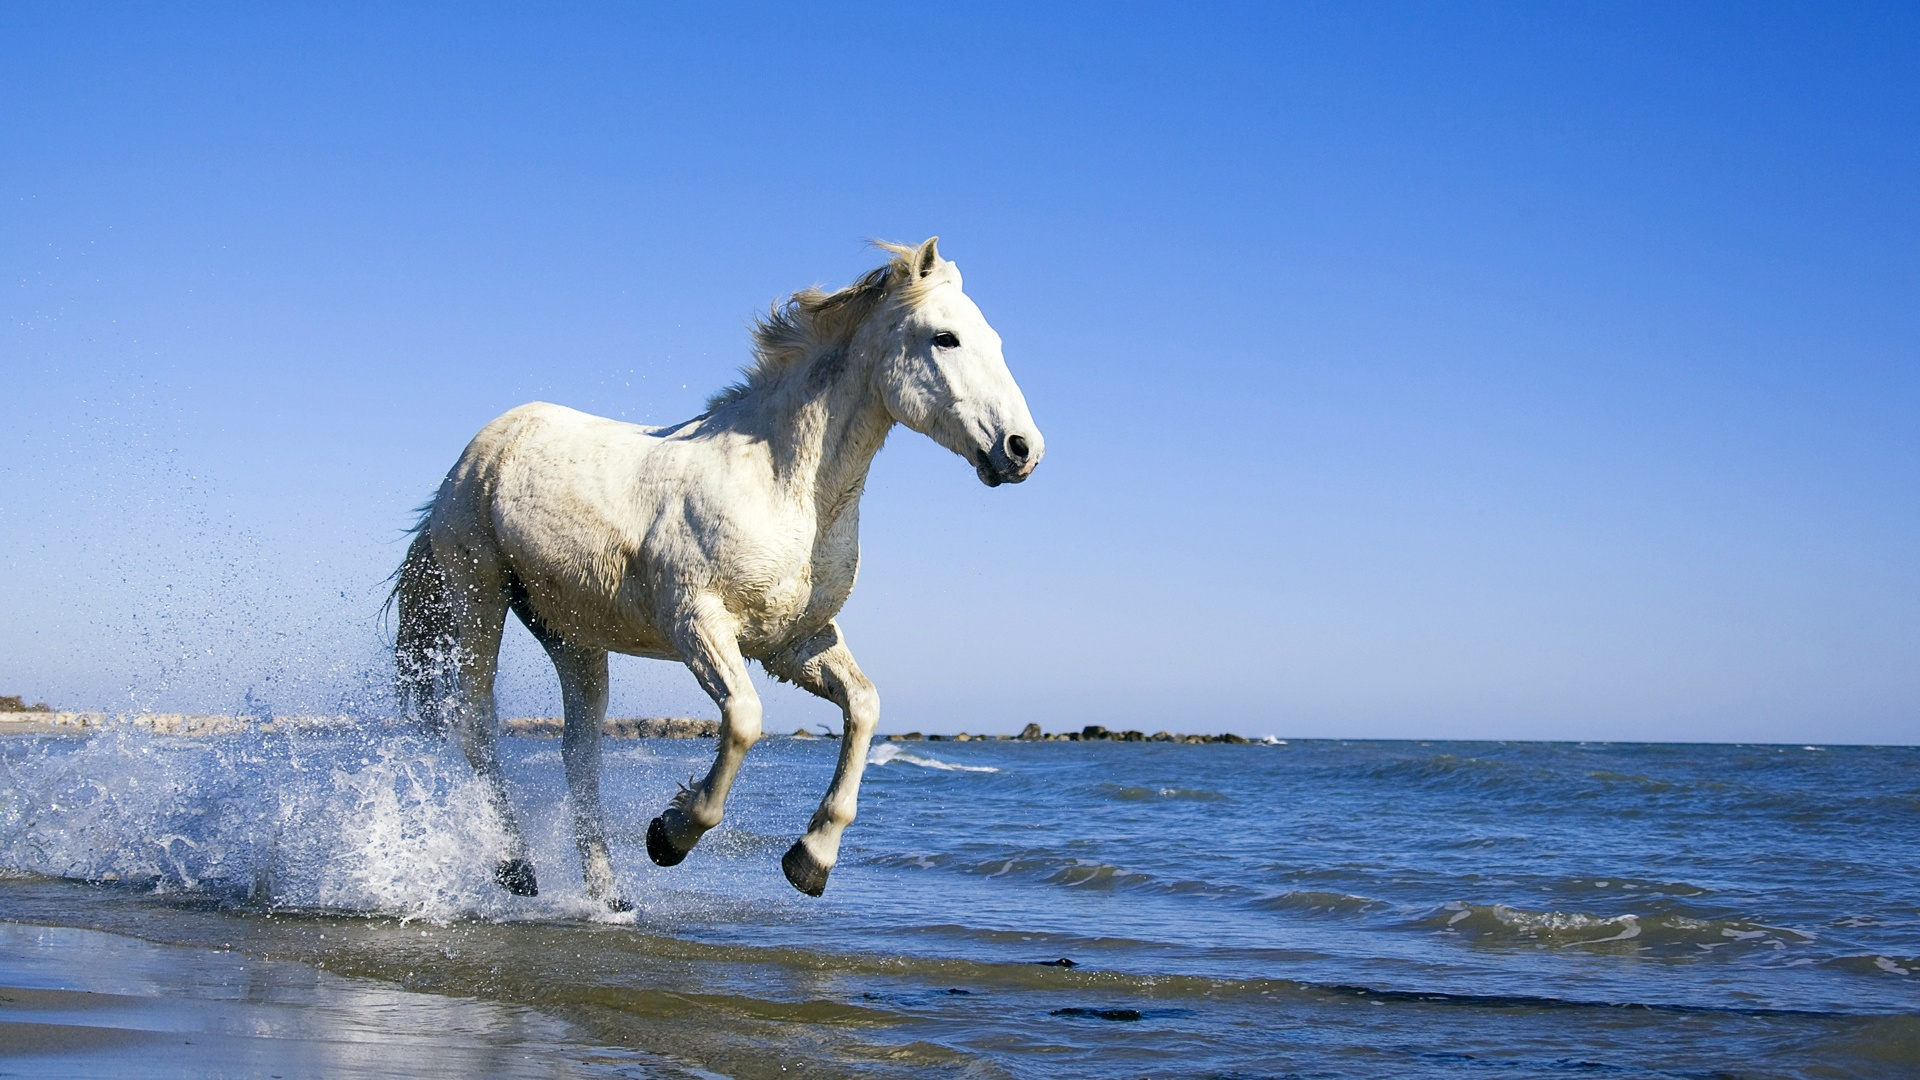 Water horse wallpaper - photo#27